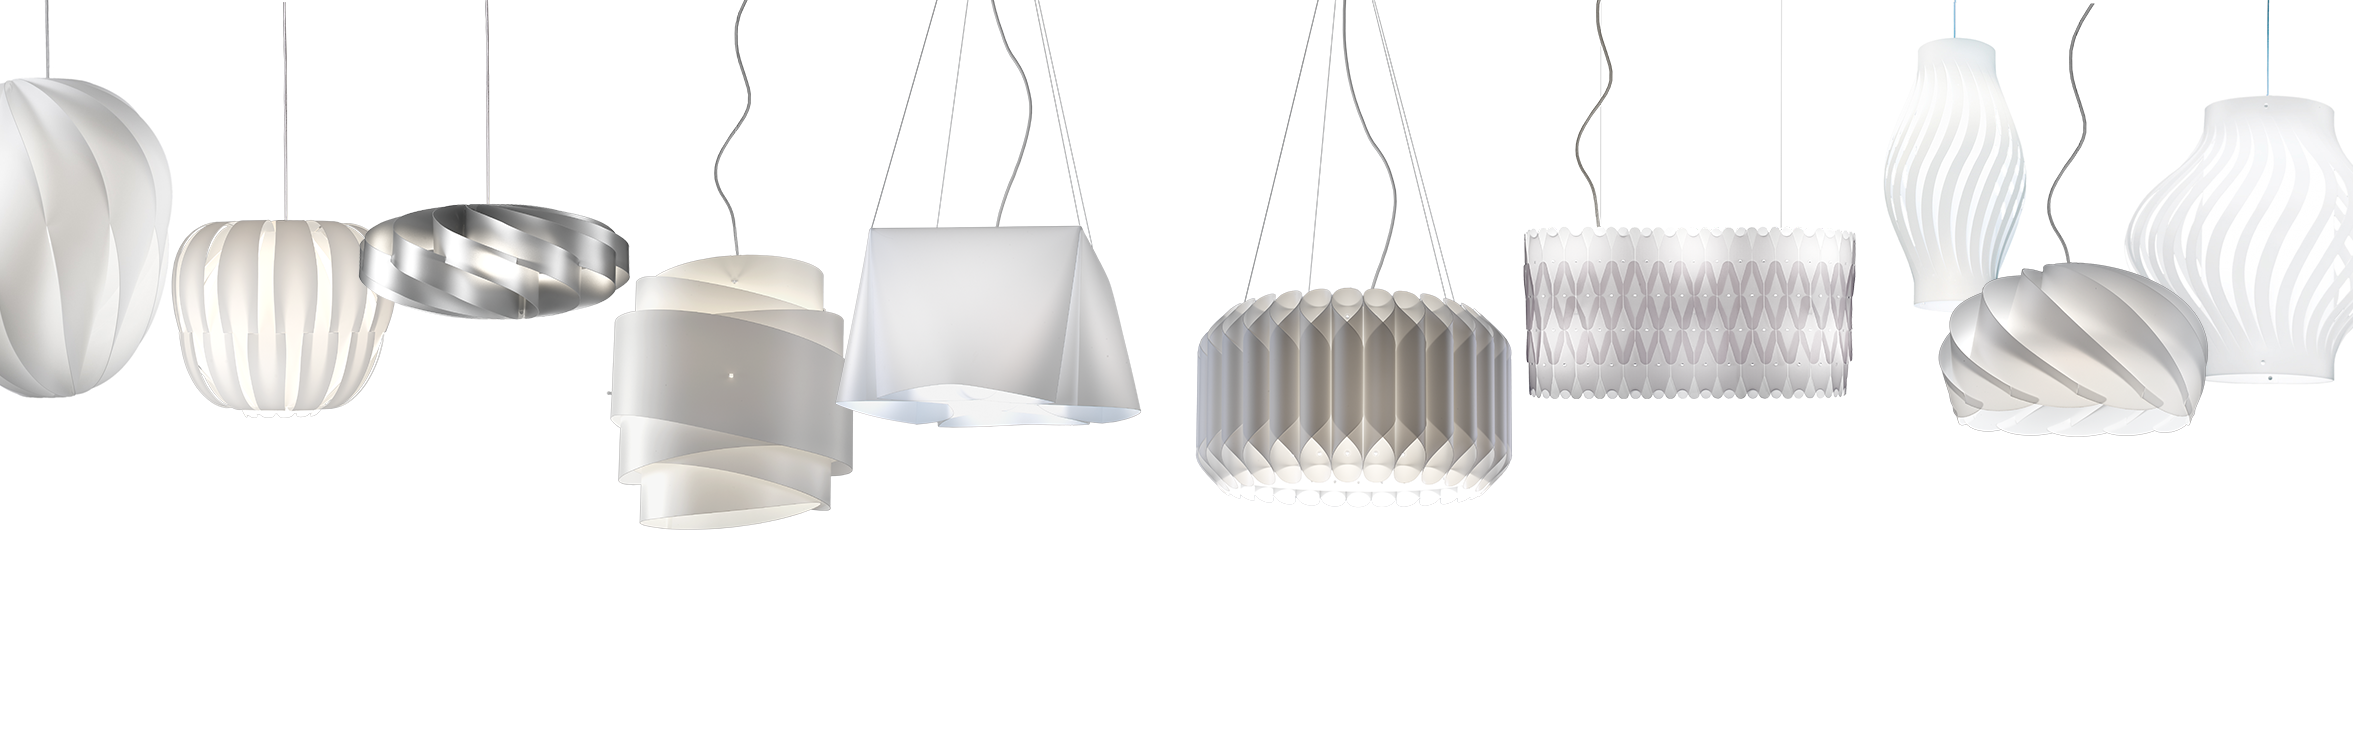 Lighting design products by Linea Zero